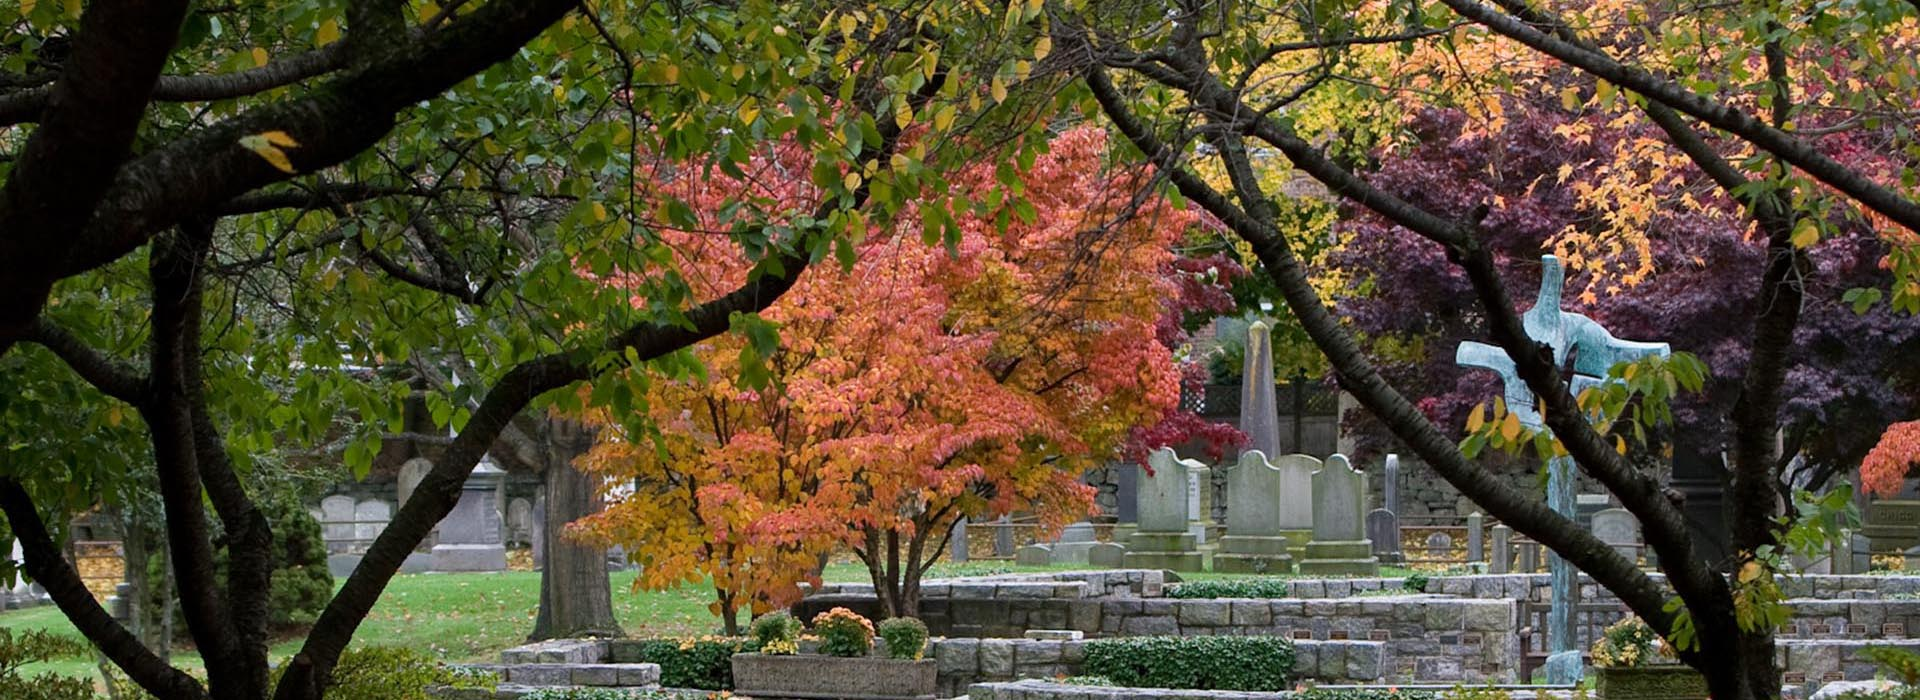 Memorial Garden in Autumn banner